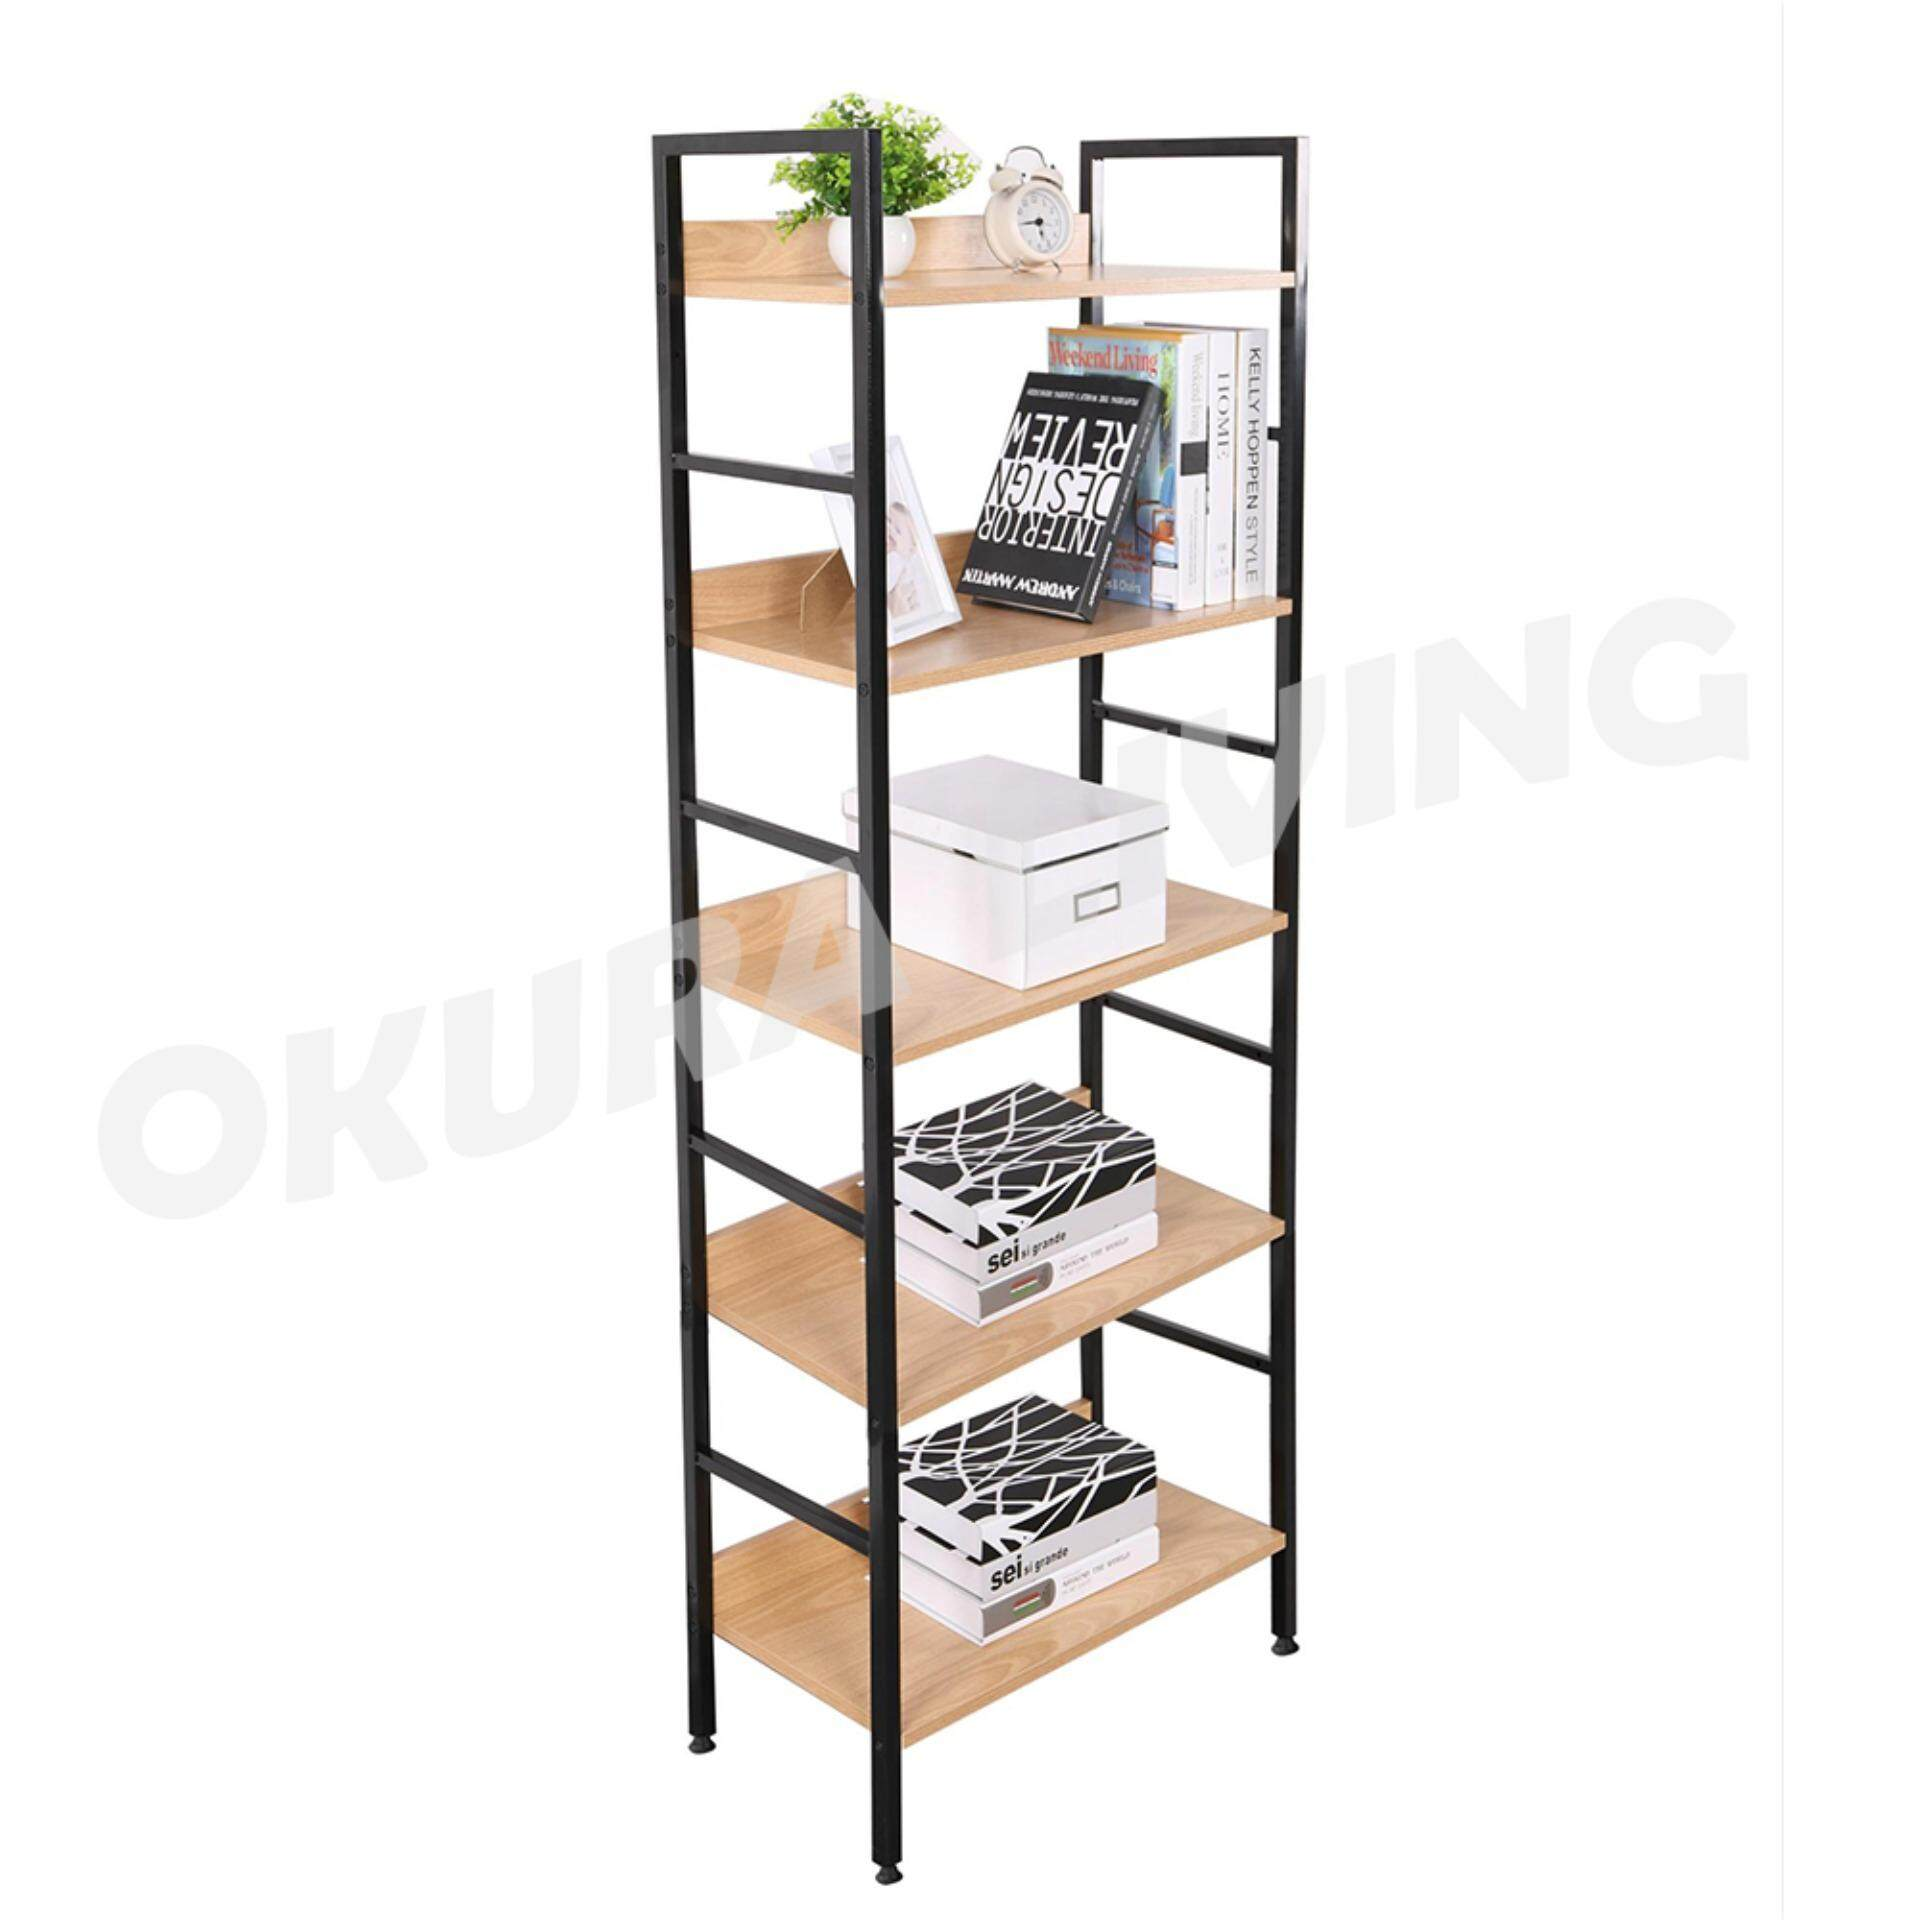 OKURA 5 Tier Multipurpose Book Shelf Home Office